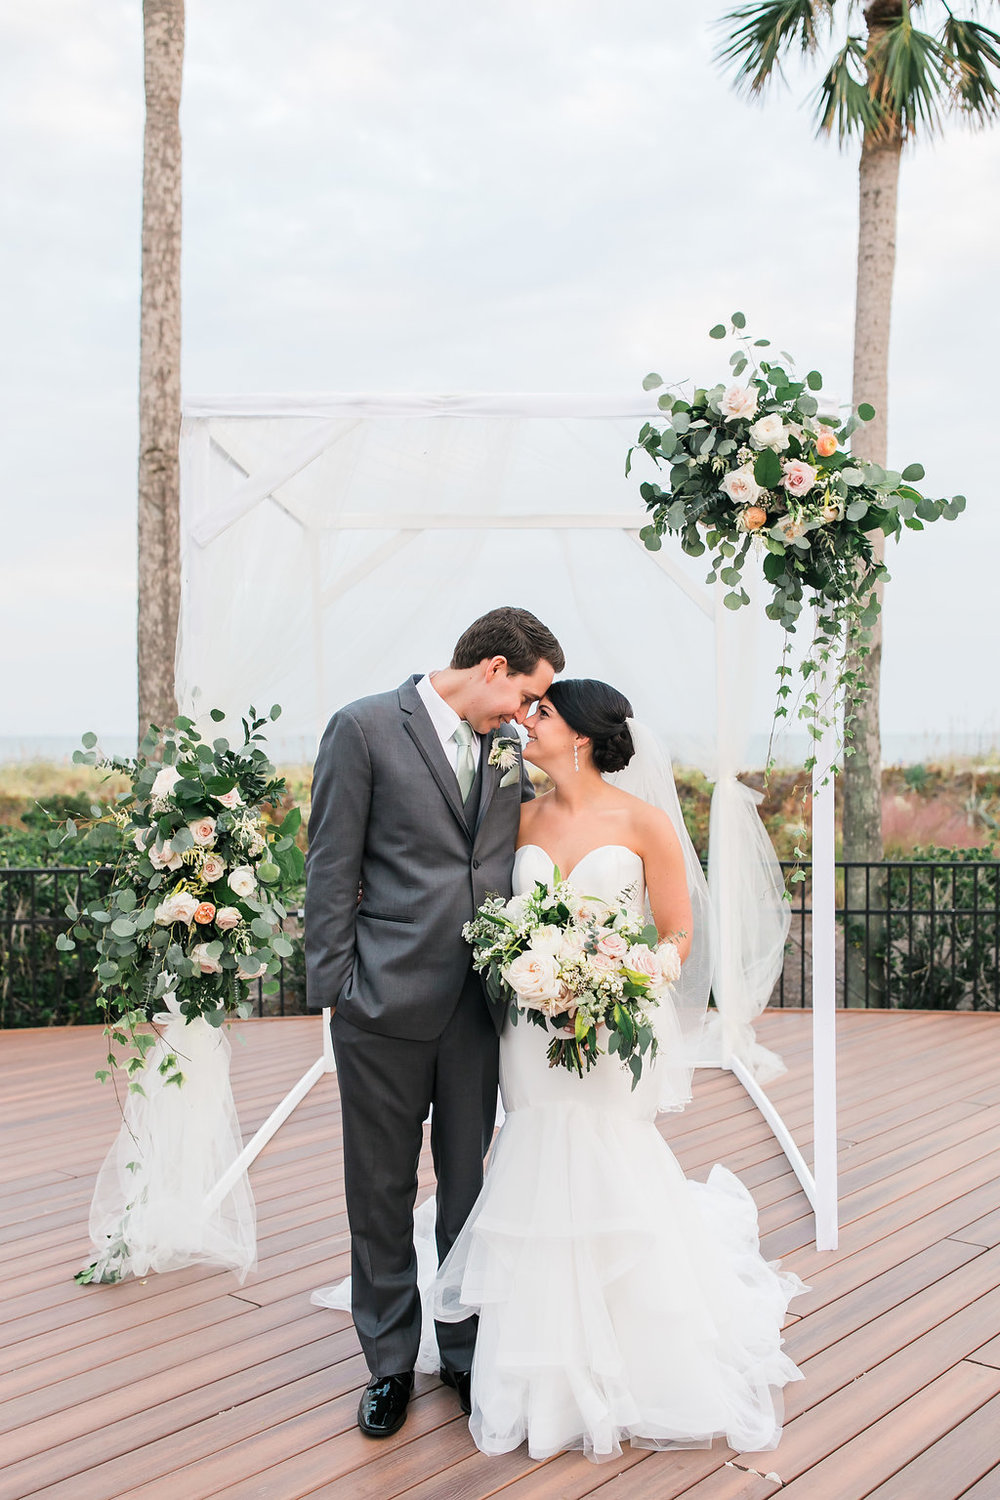 ivory-and-beau-bridal-boutique-jb-marie-photography-hannah-and-daniel-westin-hilton-head-island-wedding-hilton-head-island-florist-34.jpg